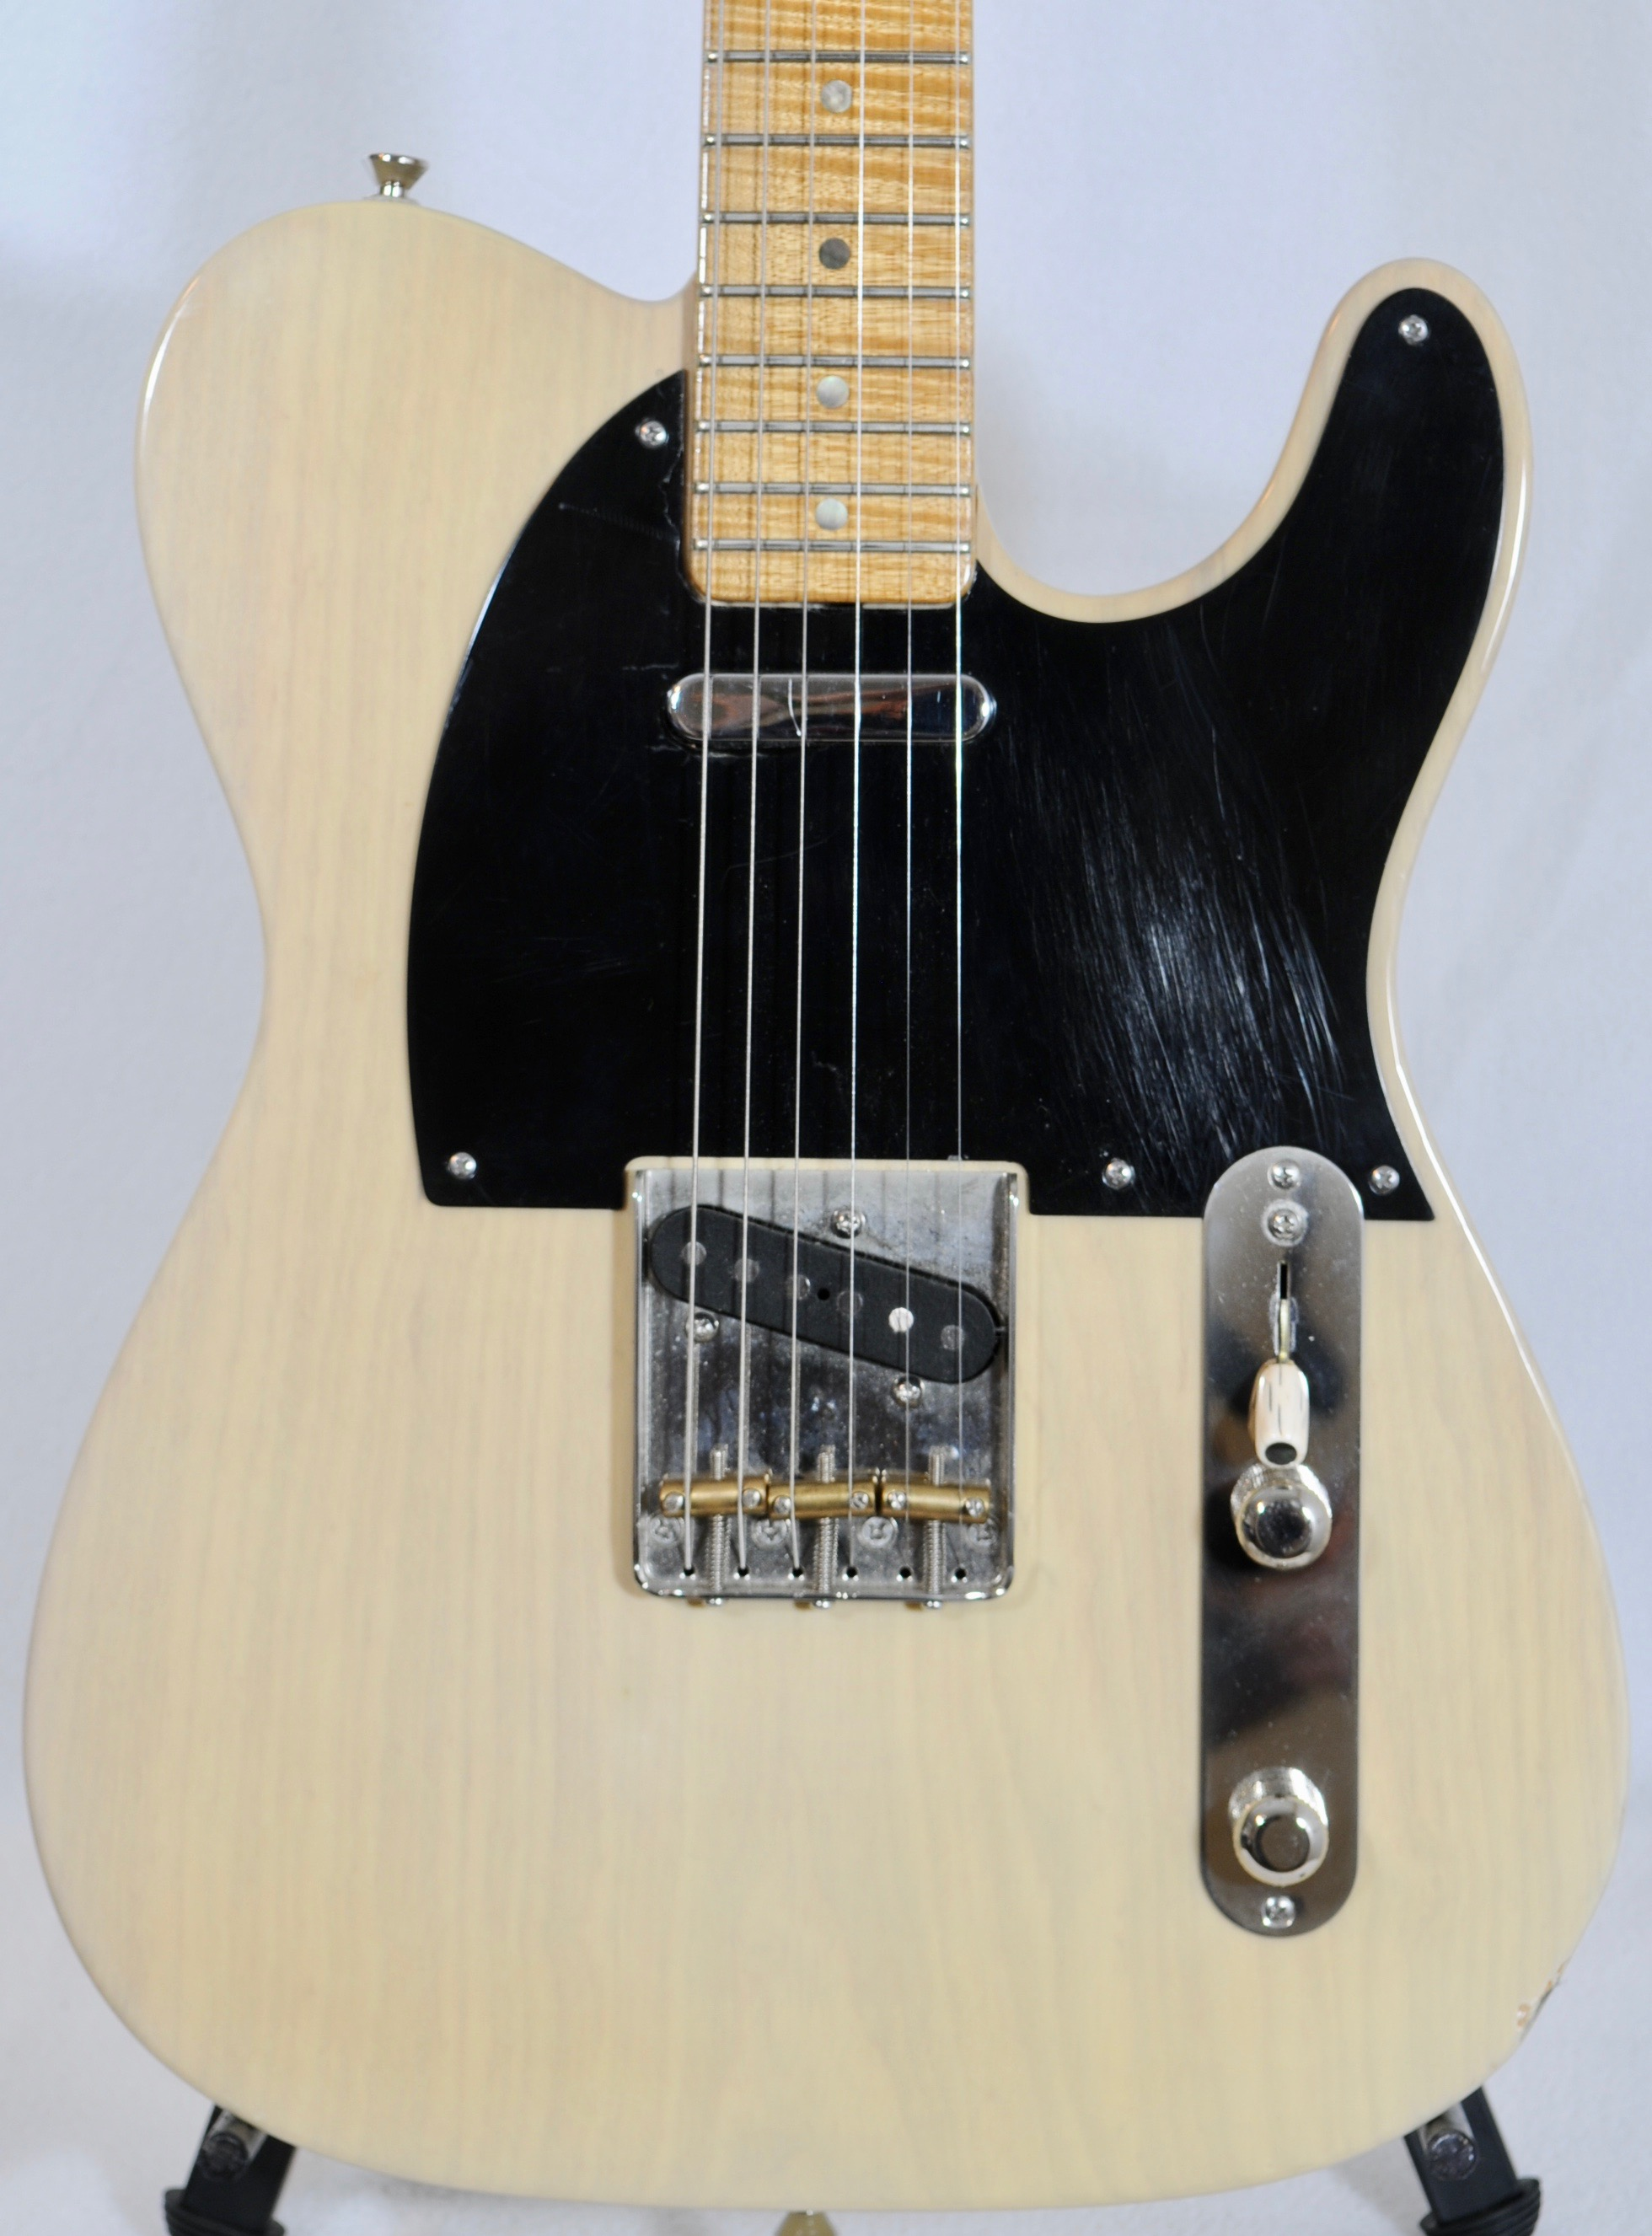 Detemple Tele :  MY PERSONAL GUITAR